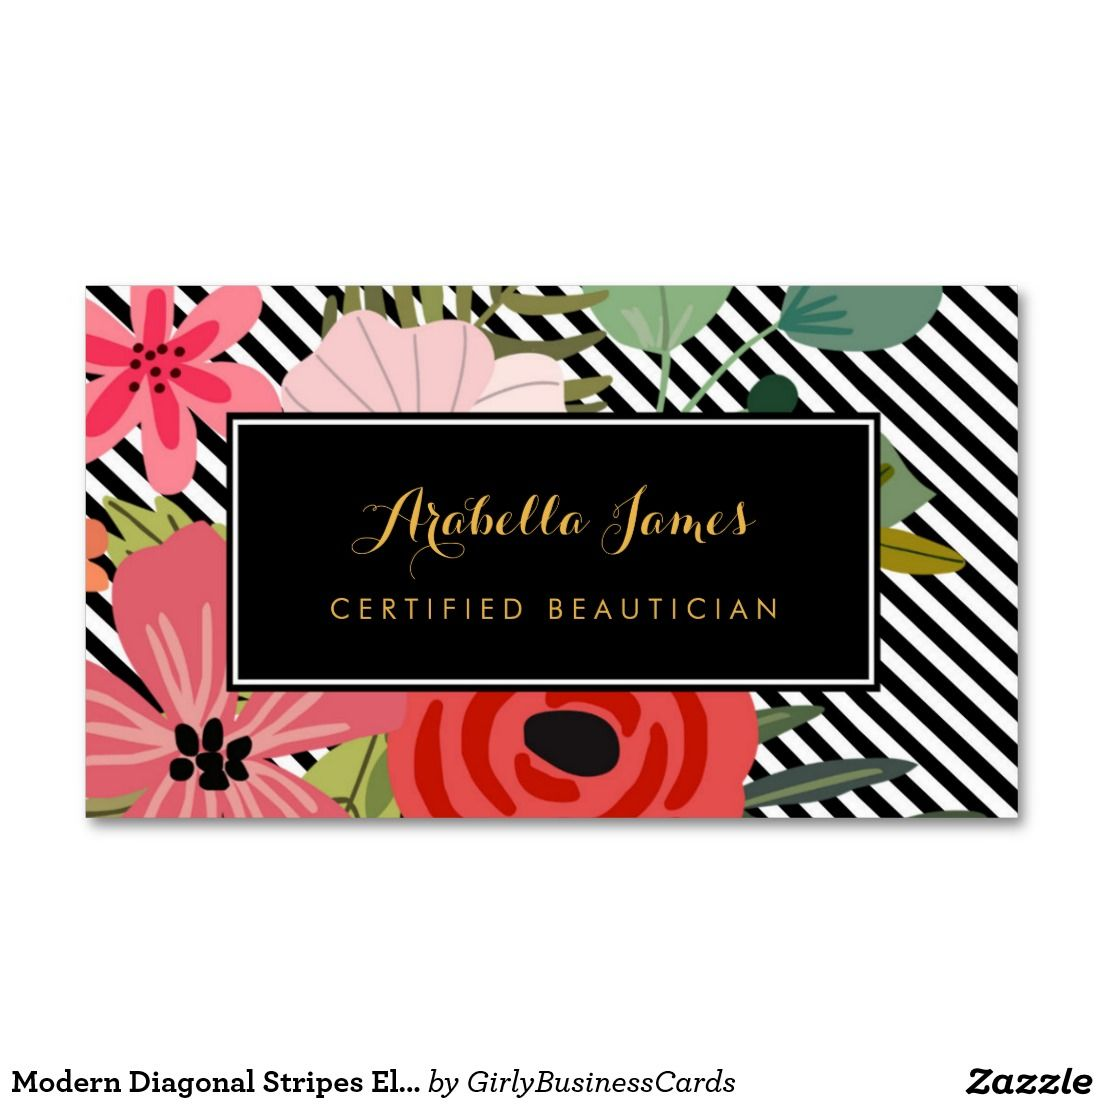 Modern diagonal stripes elegant floral beautician business card modern diagonal stripes elegant floral beautician business card colourmoves